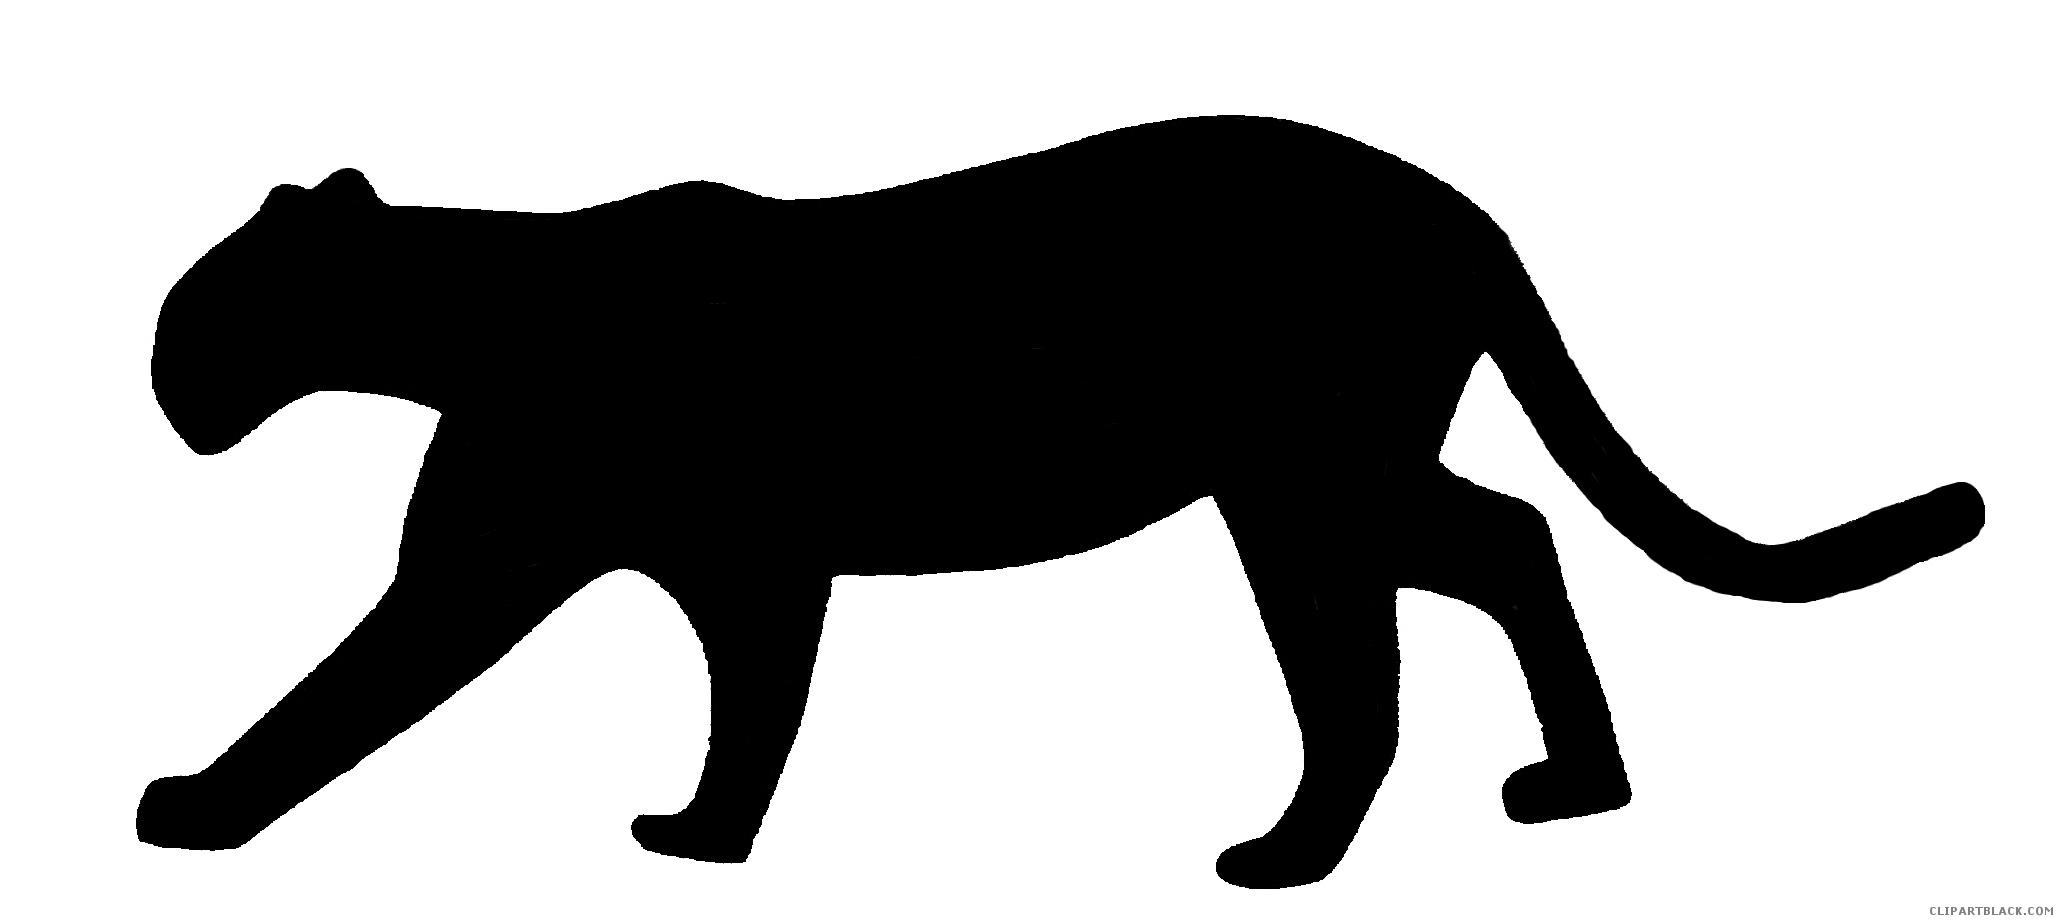 Bobcat clipart silhouette. Panther animal free black